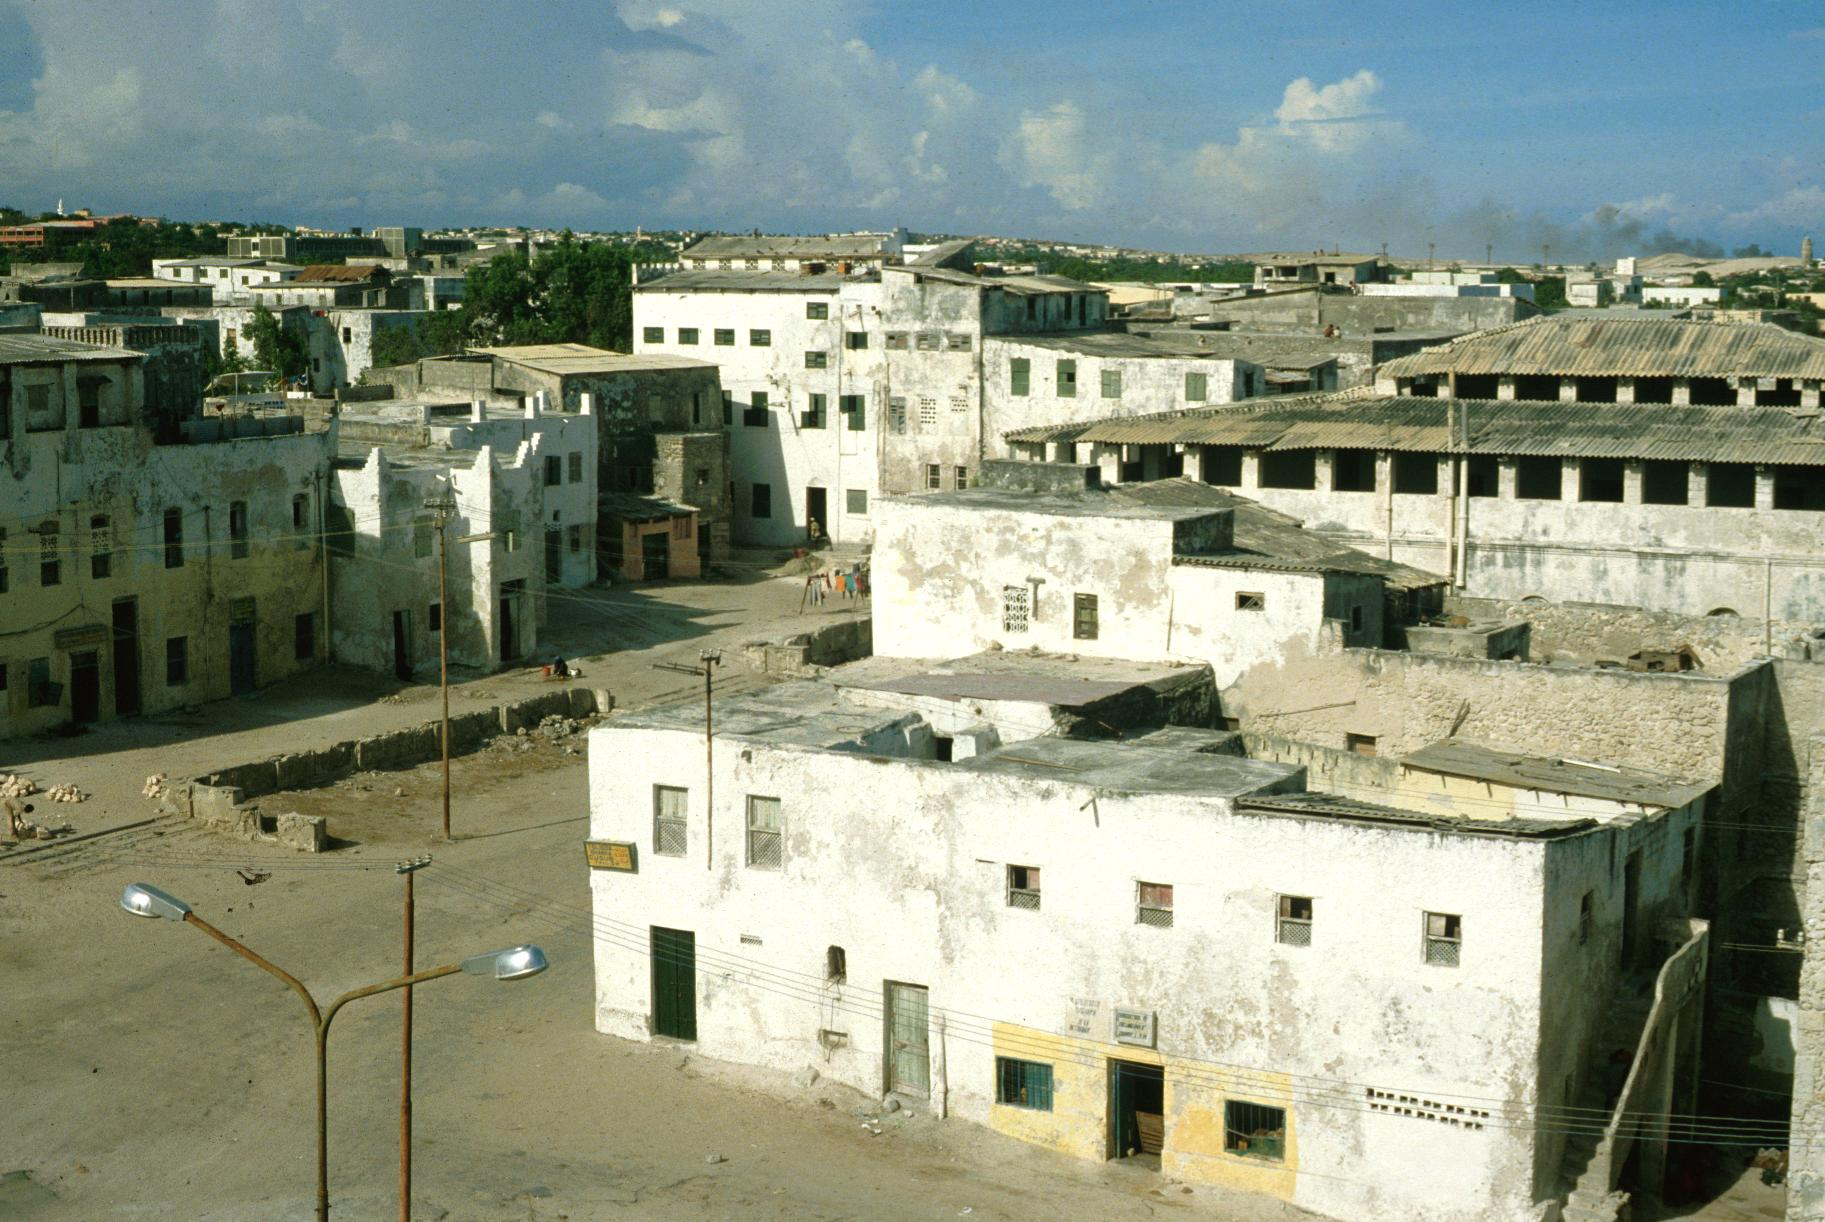 Deteriorating Old Town Section in Mogadishu